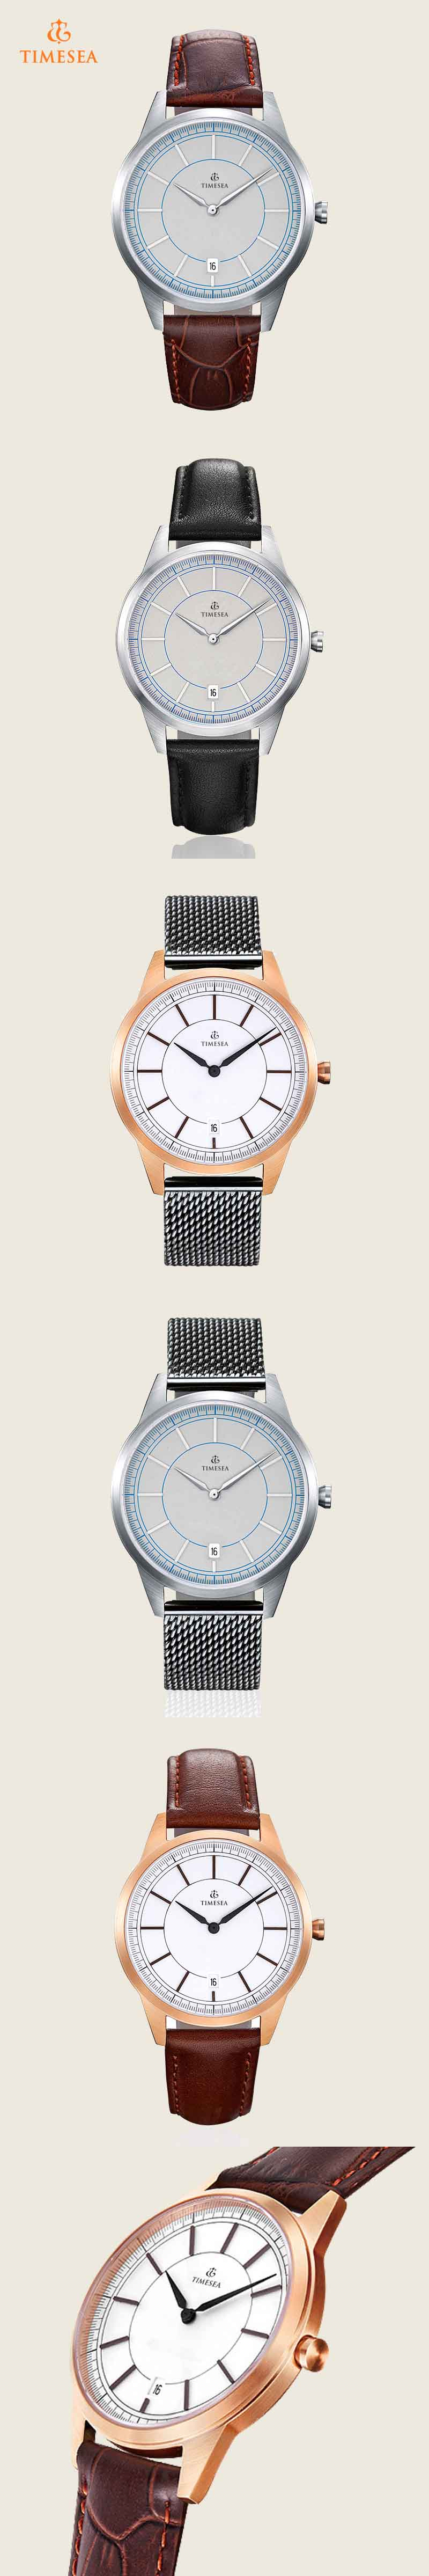 Classic Design and High Quality Wristwatch for Men 72317